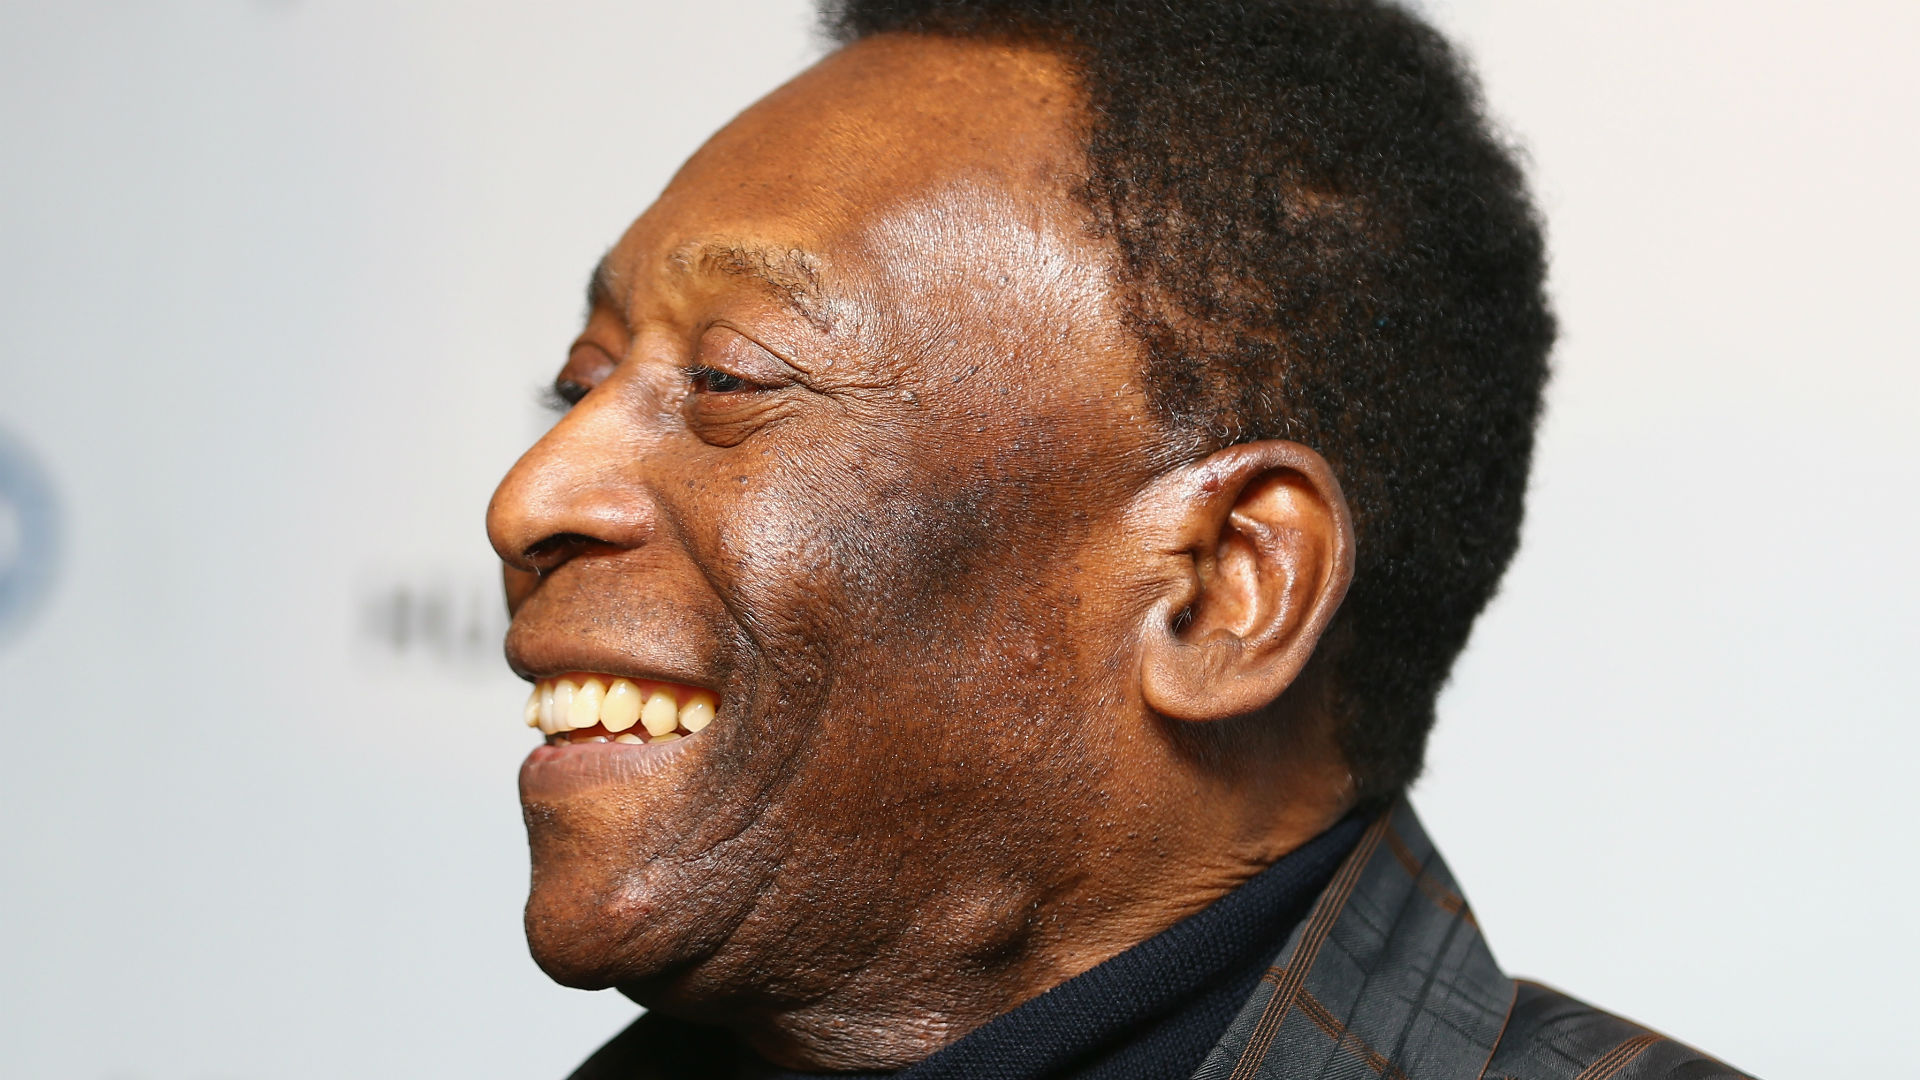 Pele on the mend - I'm ready to play again!